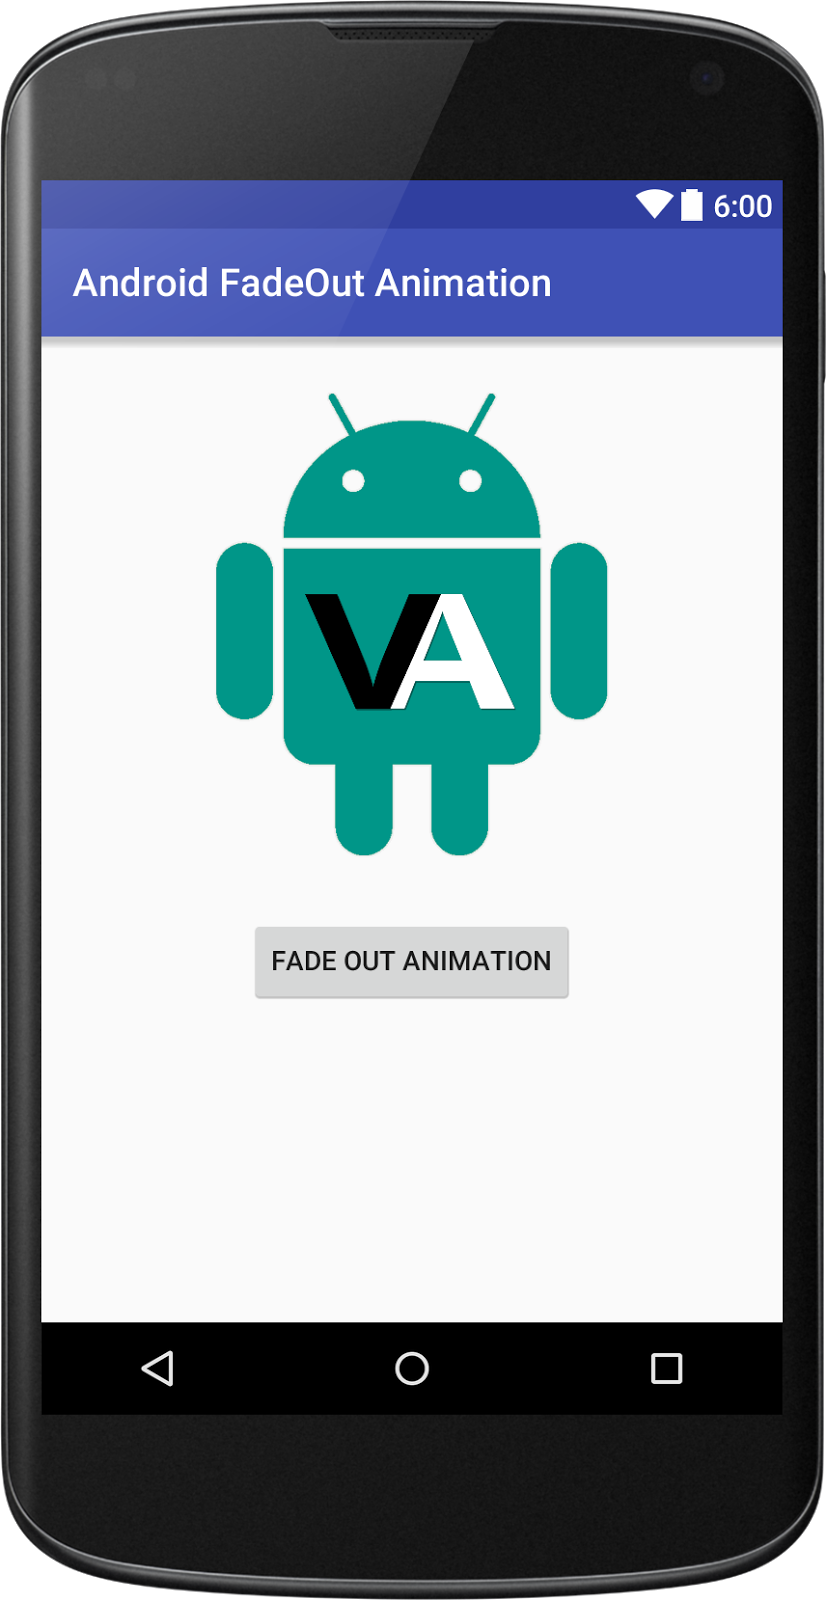 Fade Out Animation Example: How to Make FadeOut Animation in Android